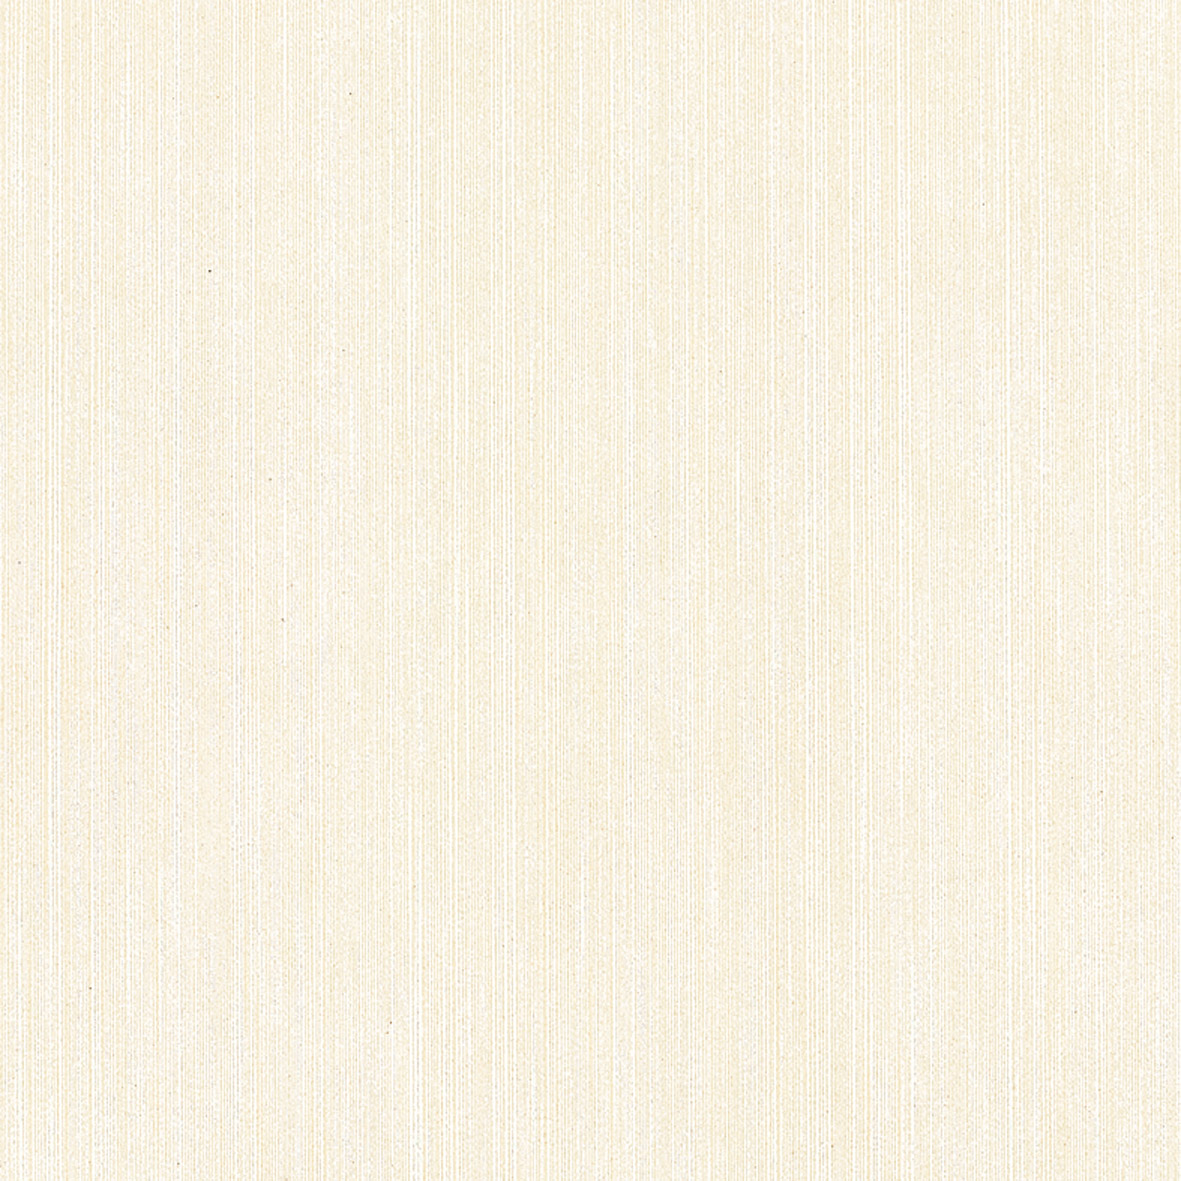 Porcelain Tile | Thin Stone Series - HSLWB6003 | by Hospitality Finishes